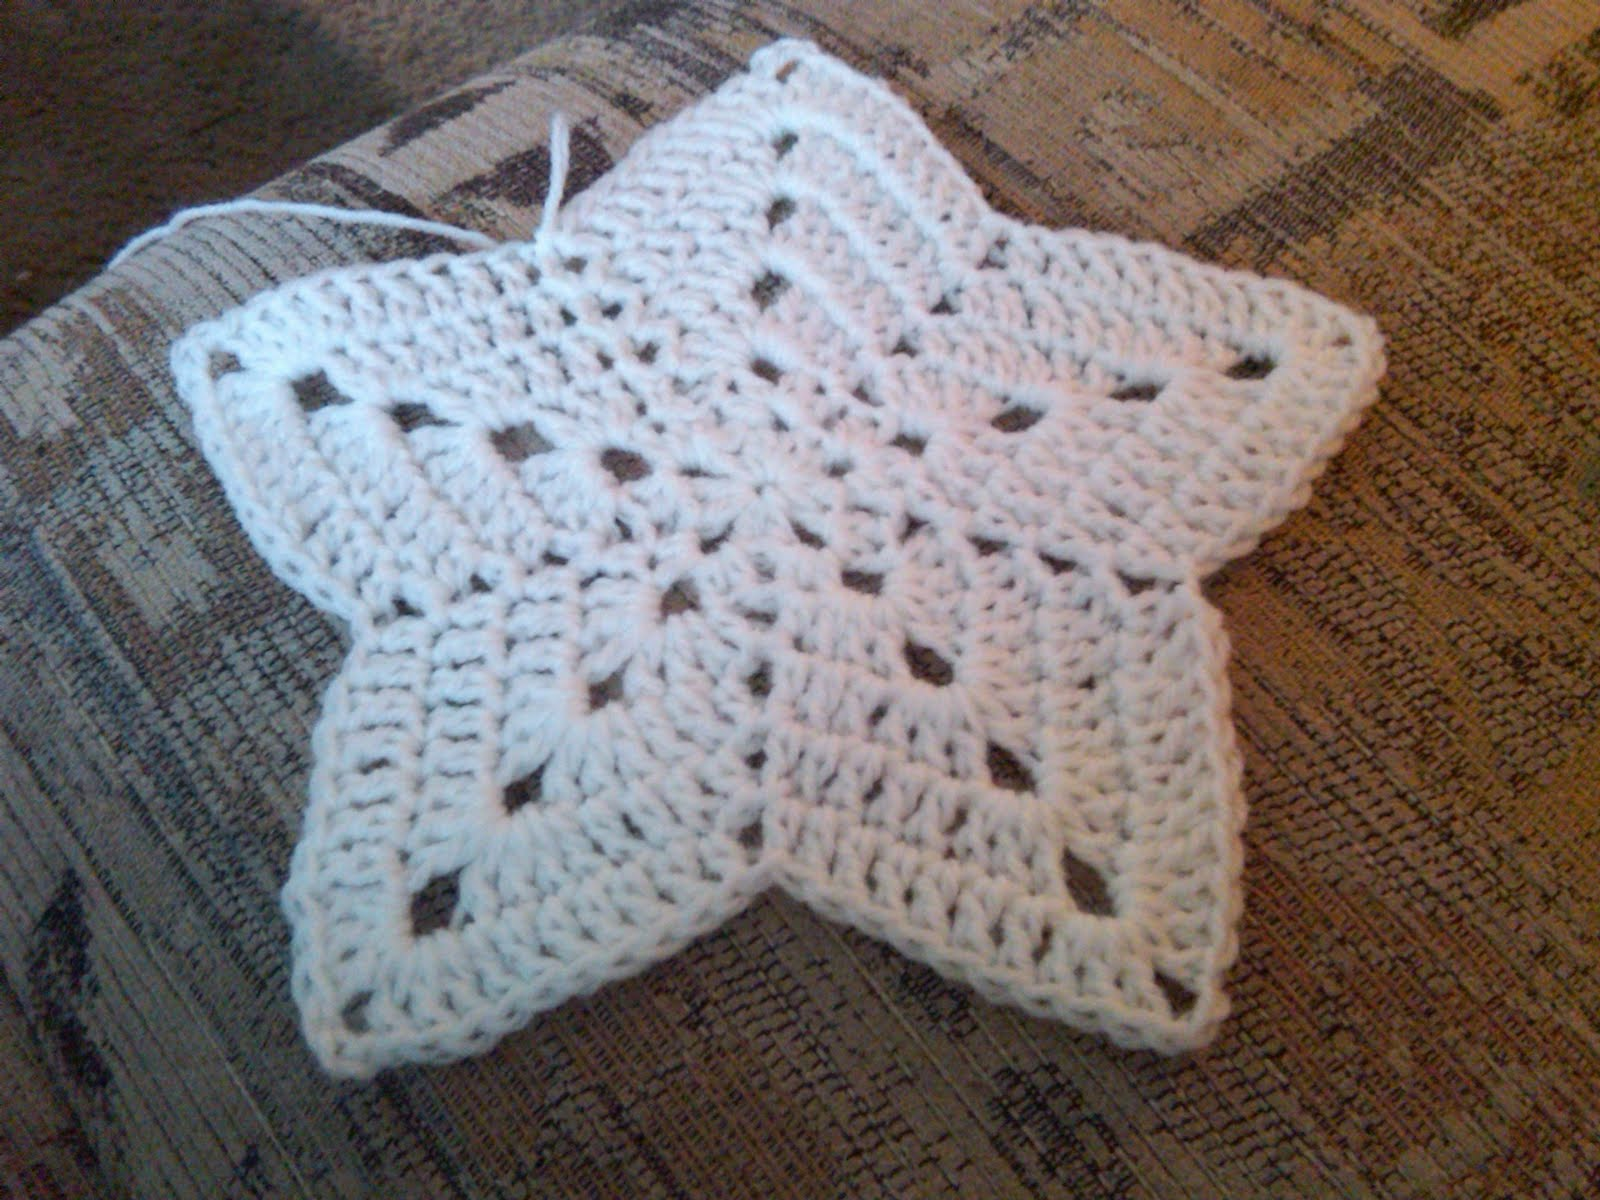 12 Point Star Afghan Pattern http://coffeencrafts.blogspot.com/2011_03_01_archive.html